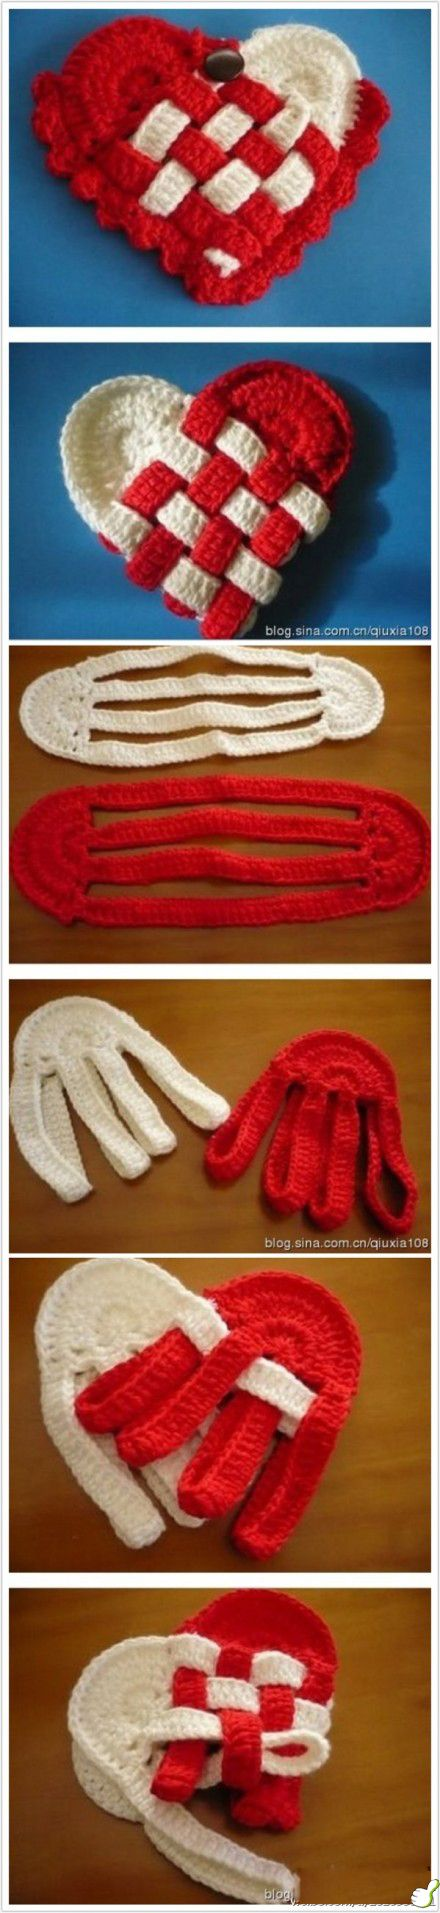 Surprise DIY: crocheted heart basket, a new twist on an old children's craft. ❥Teresa Restegui http://www.pinterest.com/teretegui/❥